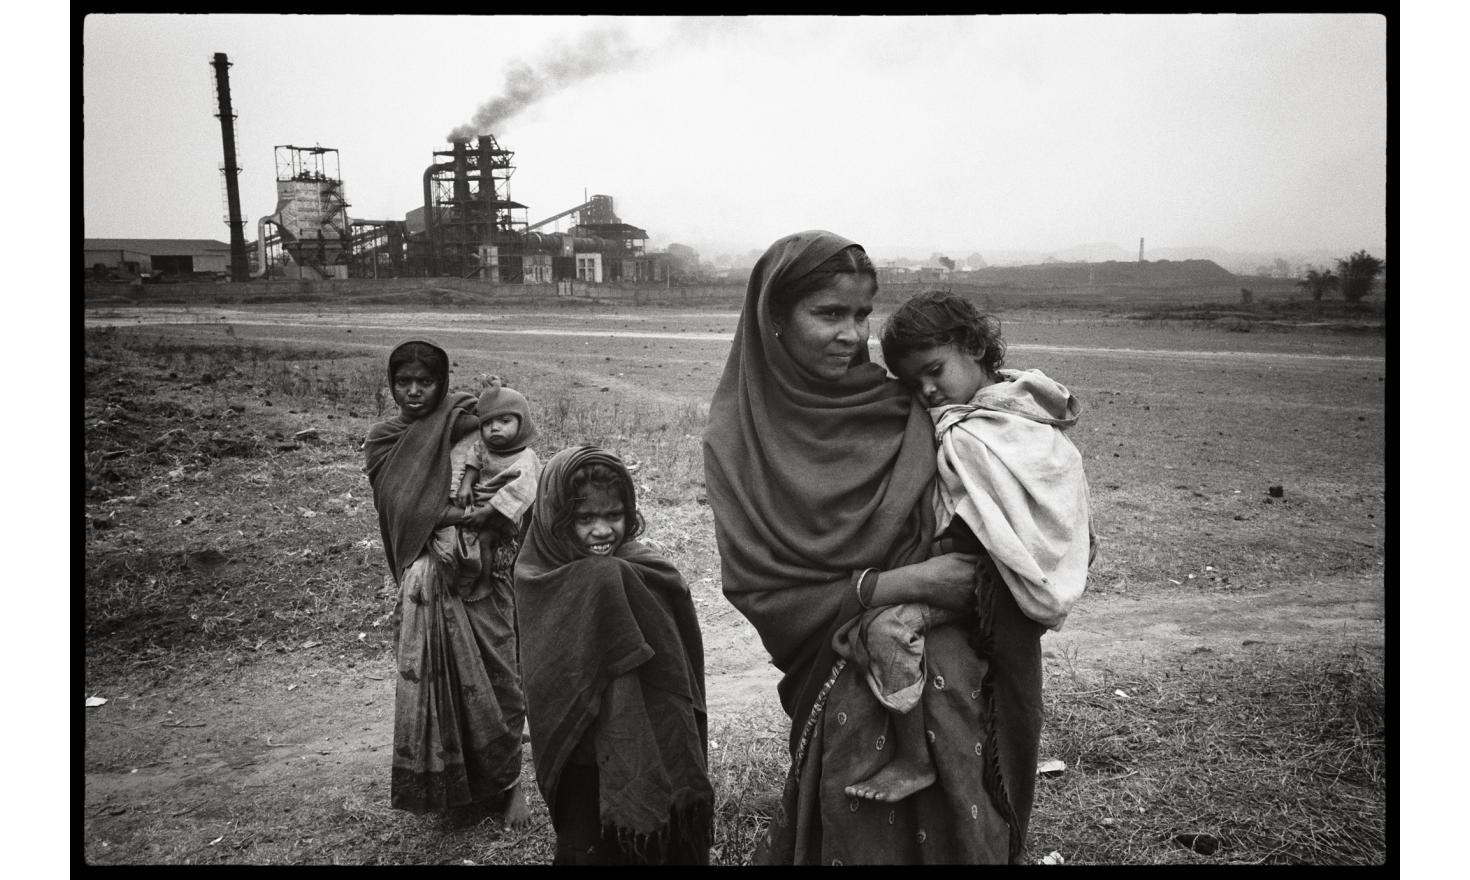 Patratu district, Jharkhand, India In 2001, a giant iron processing factory was built in complete impunity on the tribal land of the Aborigines of Hehal.